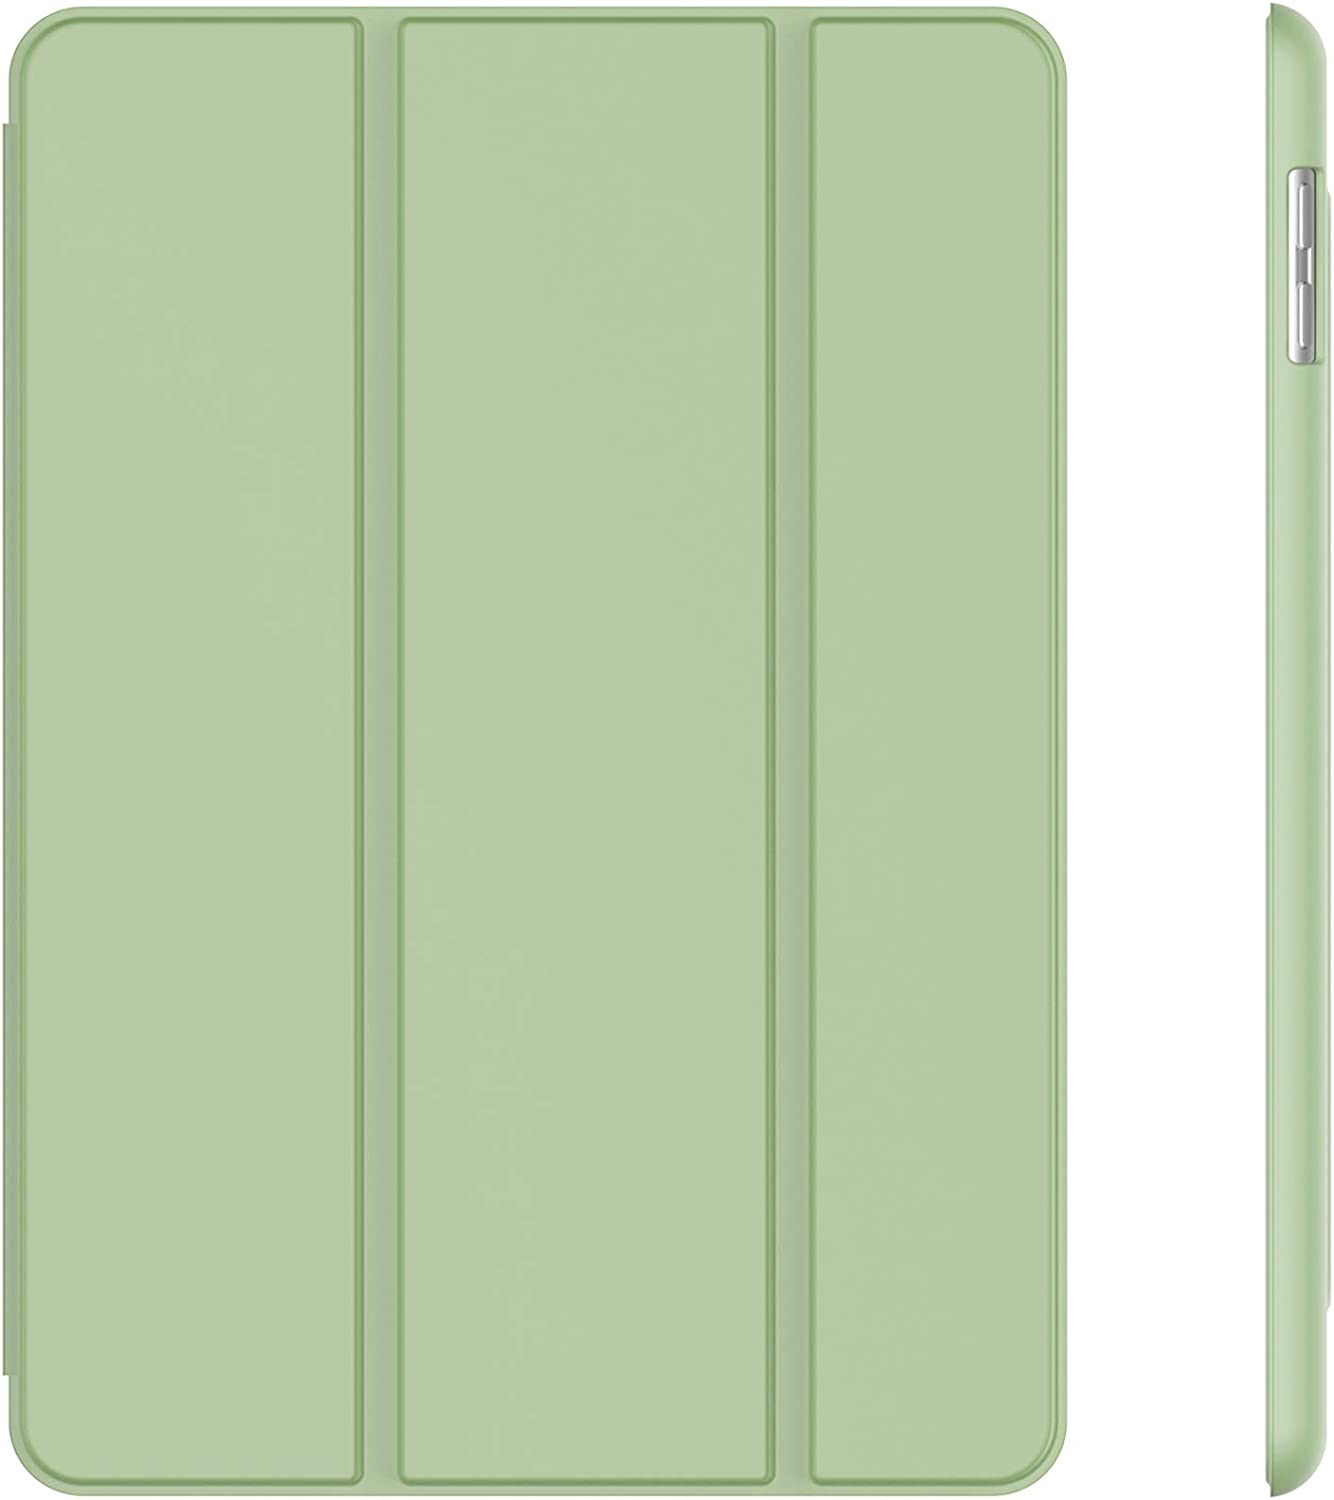 JETech Case for iPad (9.7-Inch, 2018/2017 Model, 6th/5th Generation), Smart Cover Auto Wake/Sleep, Matcha Green